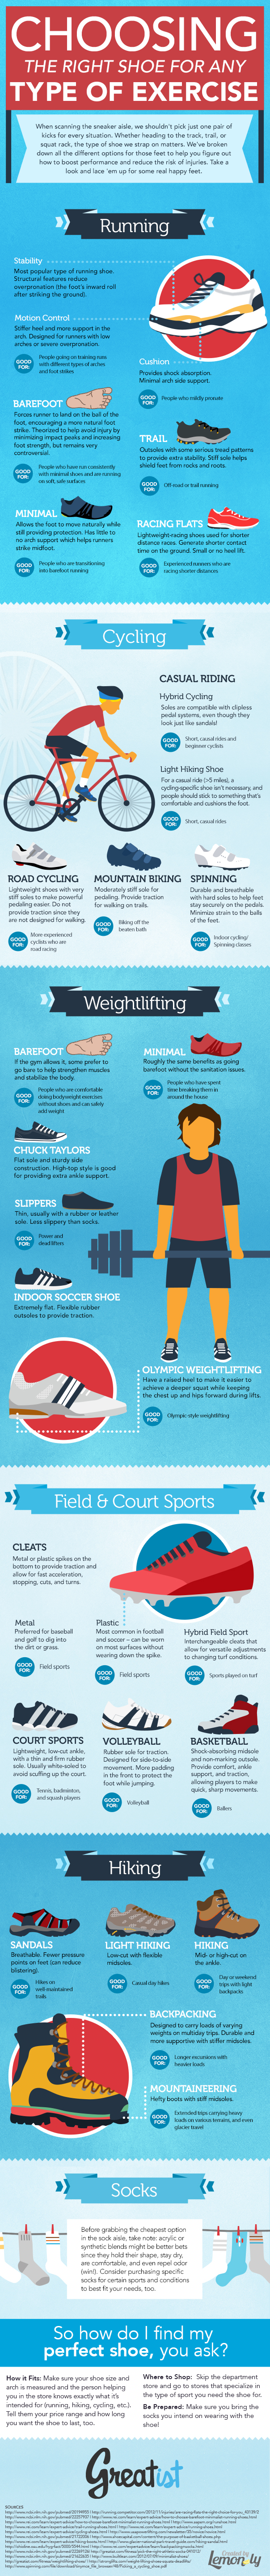 Choosing The Right Exercise Shoes